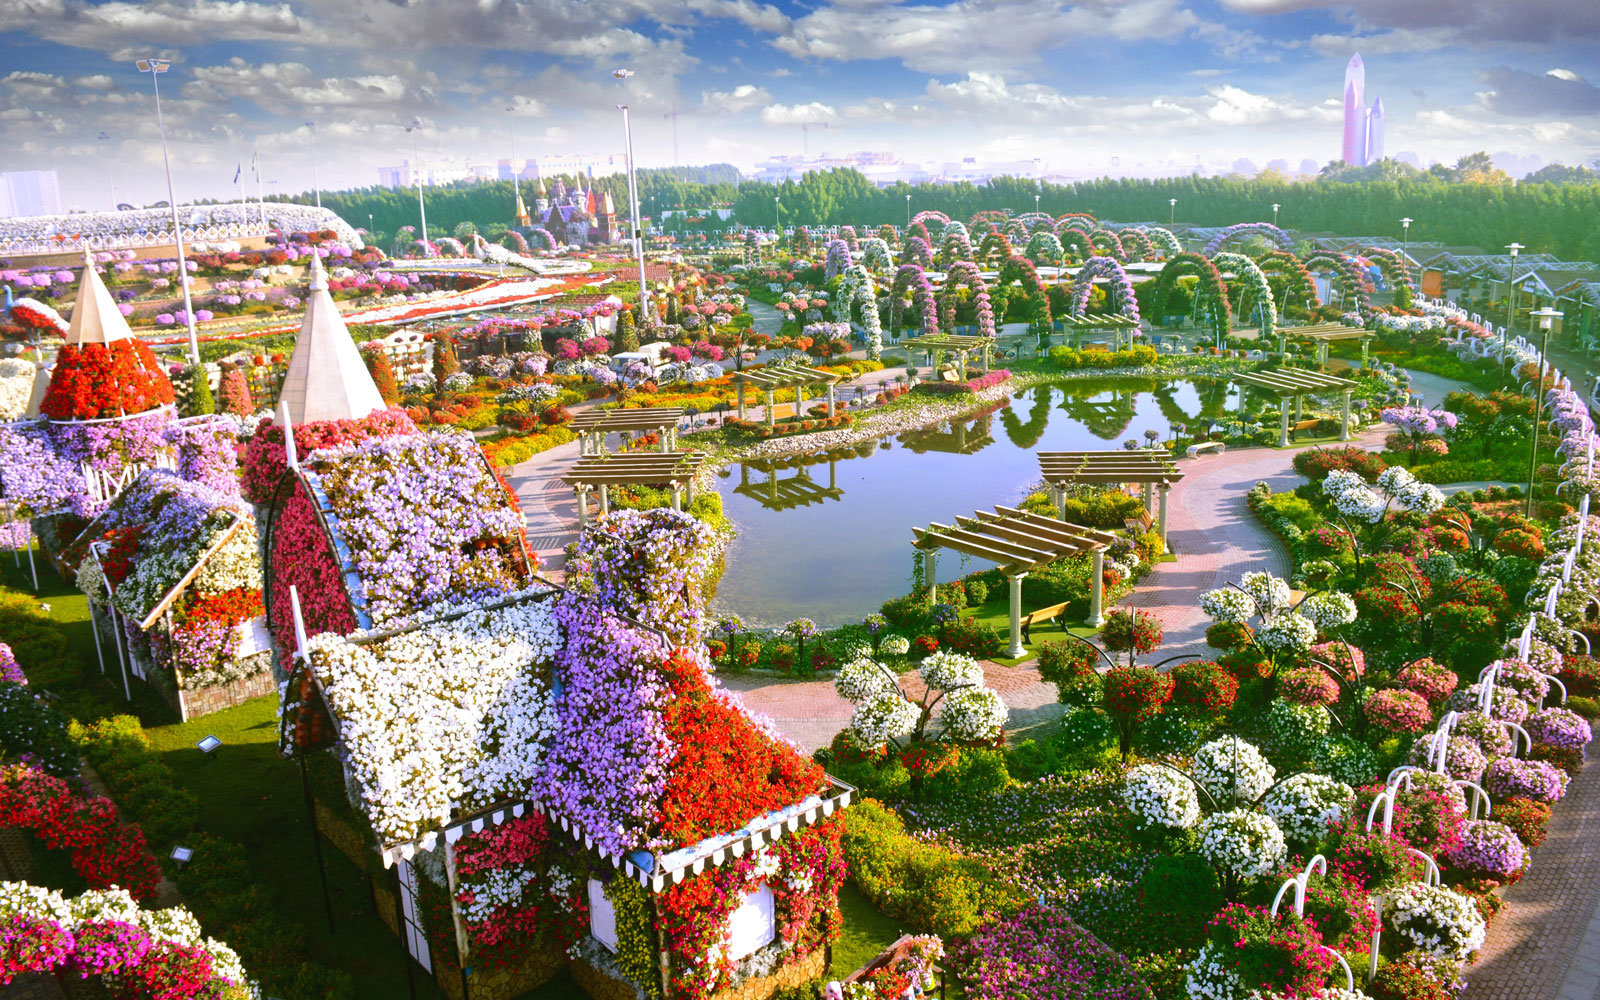 The World's Biggest Flower Garden Sits in the Middle of a ... - photo#9